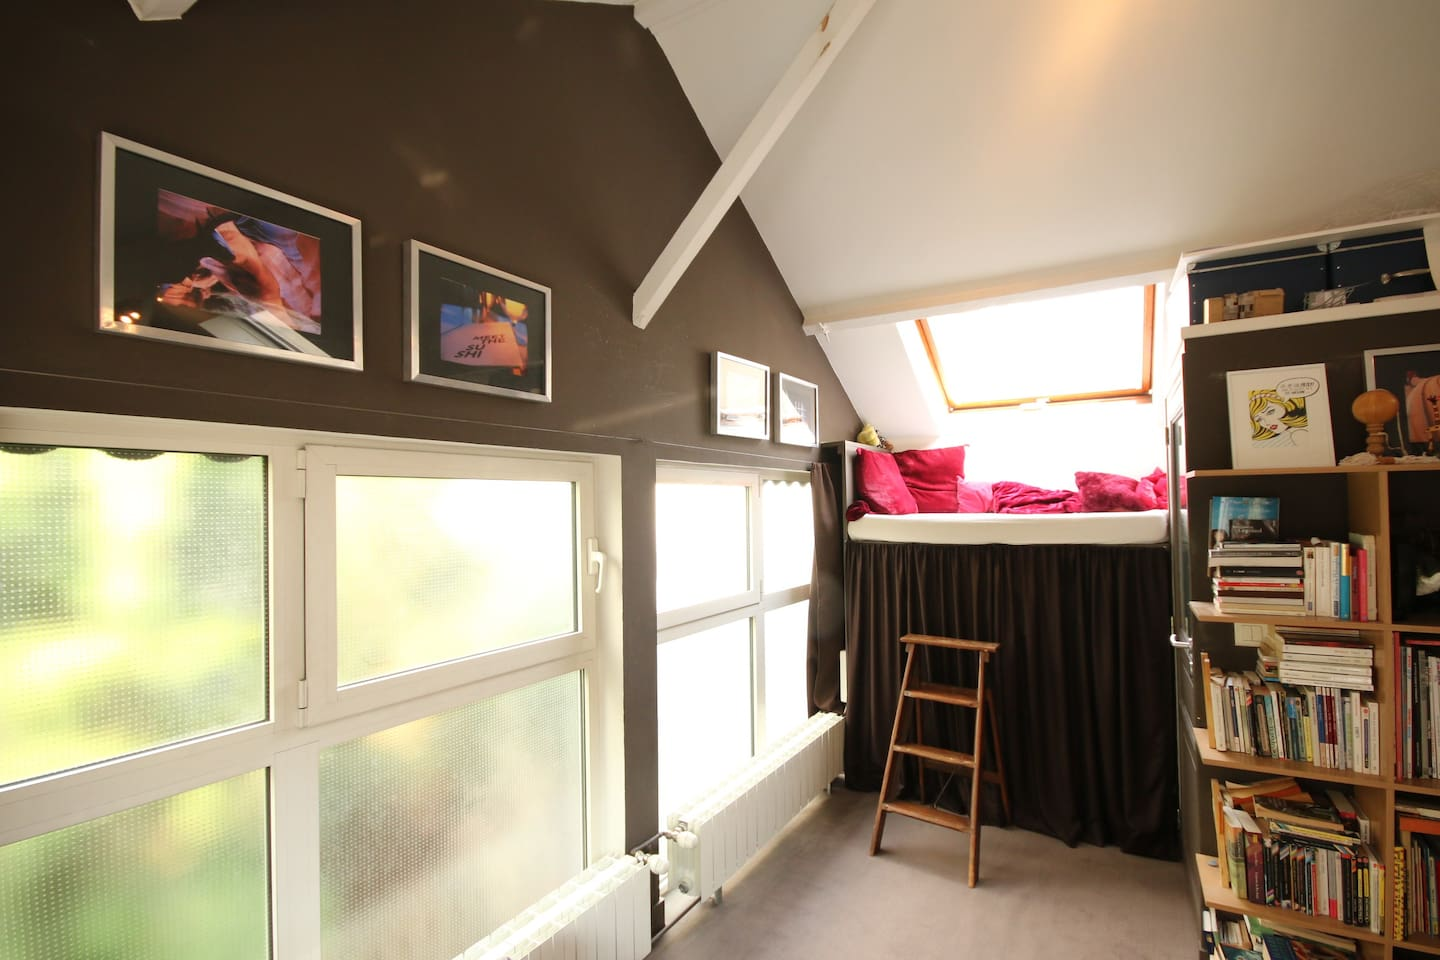 Your private second floor room with possible additional bed